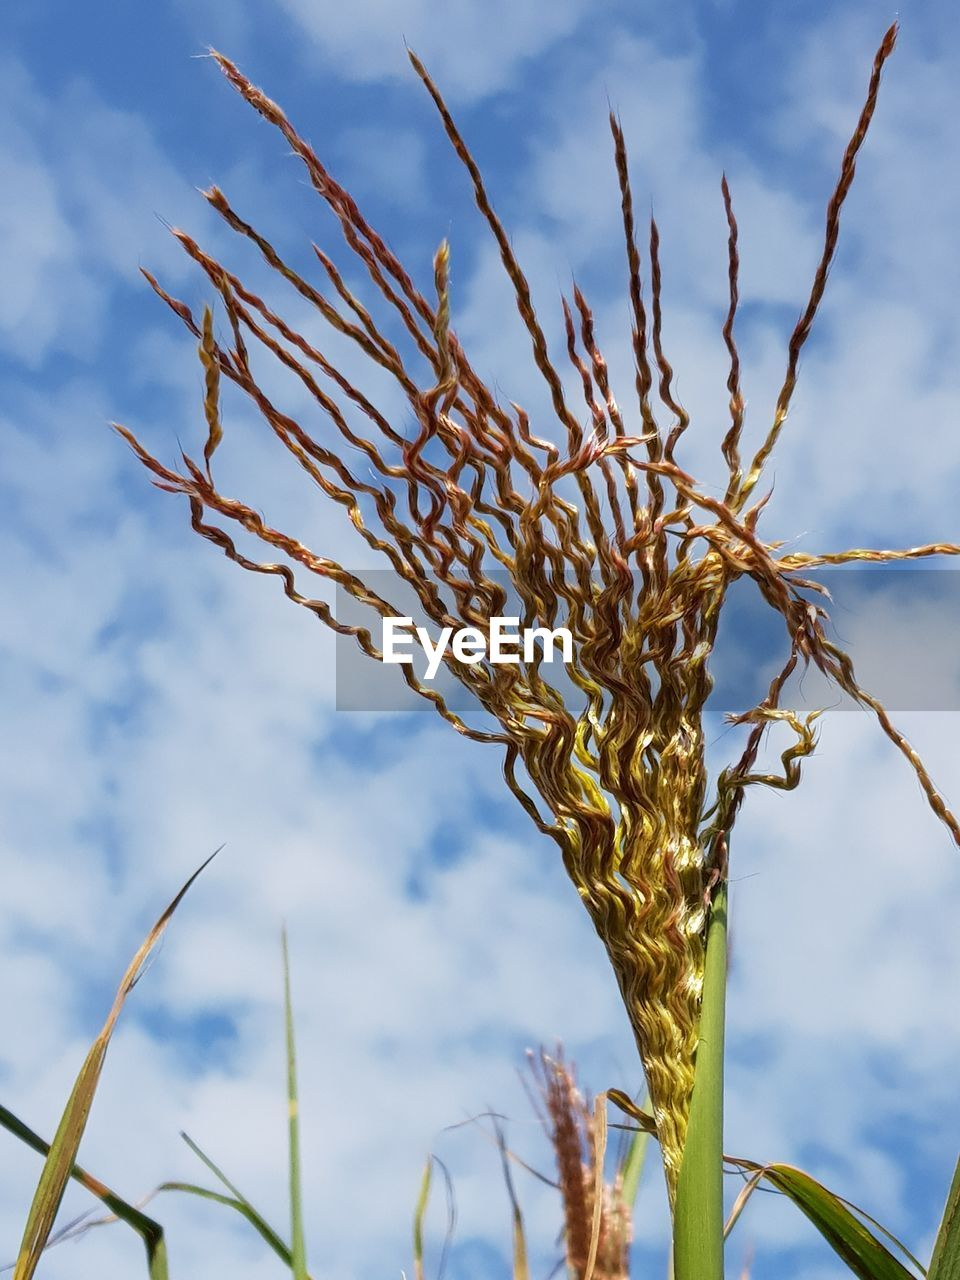 growth, plant, sky, nature, no people, beauty in nature, focus on foreground, cloud - sky, day, close-up, agriculture, crop, tranquility, cereal plant, outdoors, sunlight, field, wheat, rural scene, farm, stalk